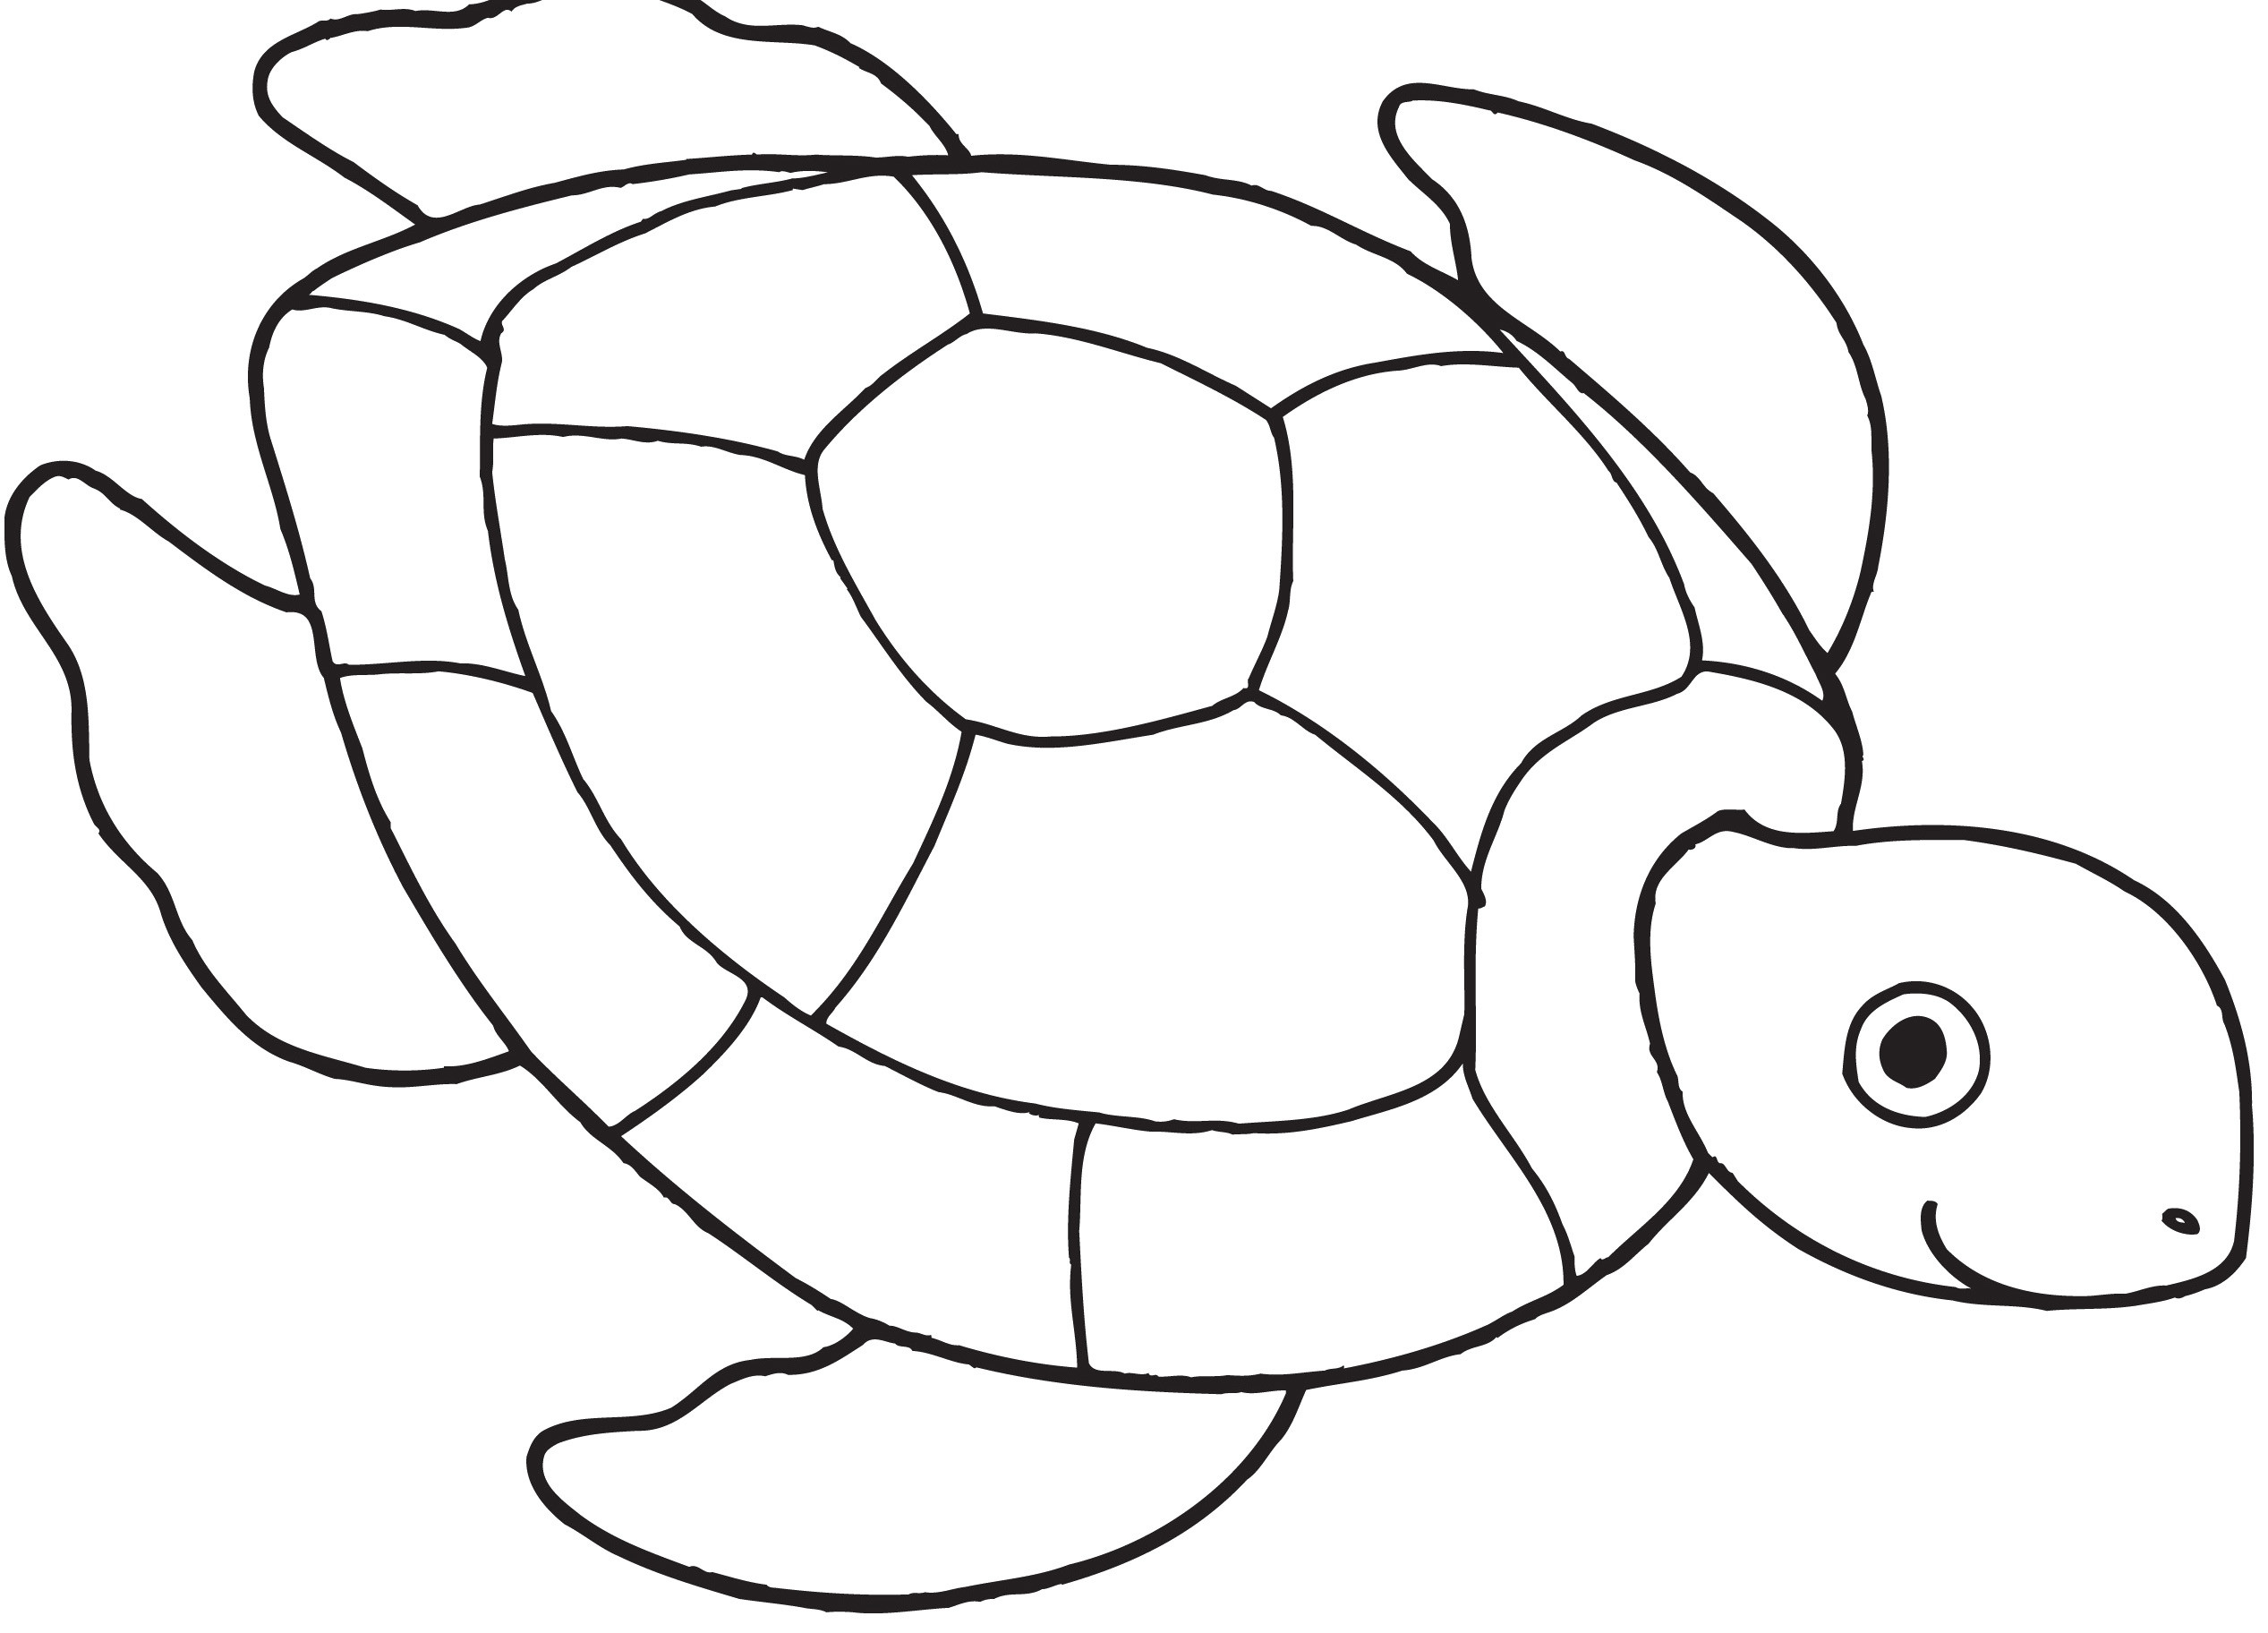 Turtle Coloring Book  Turtle Coloring Page Coloring Book Coloring Pages